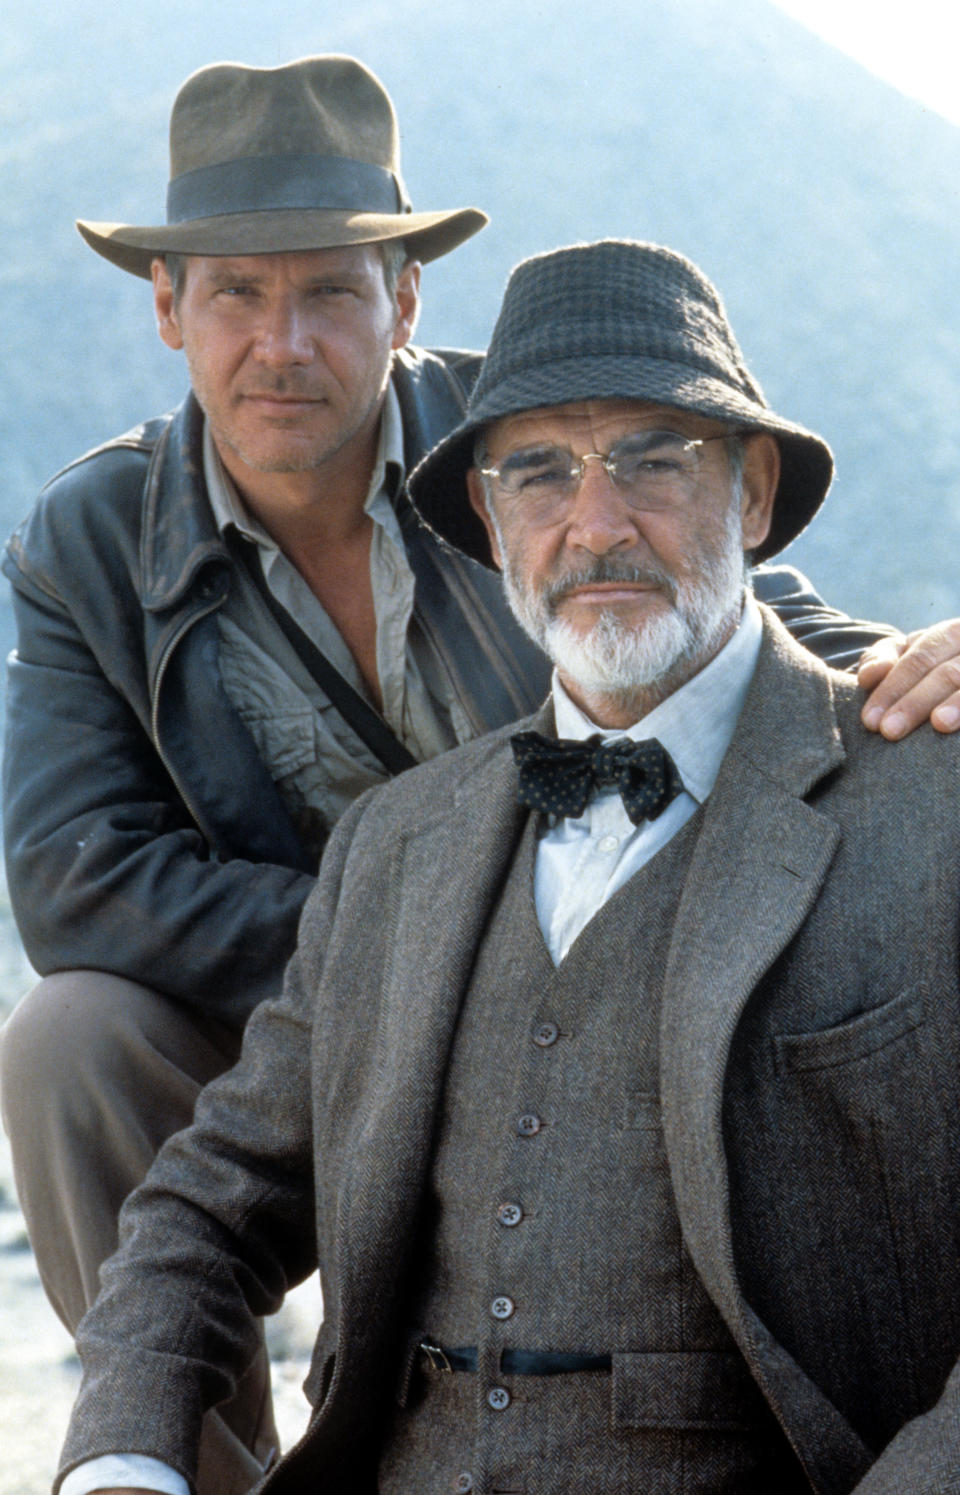 Harrison Ford and Sean Connery on set of the film 'Indiana Jones And The Last Crusade', 1989. (Photo by Paramount/Getty Images)